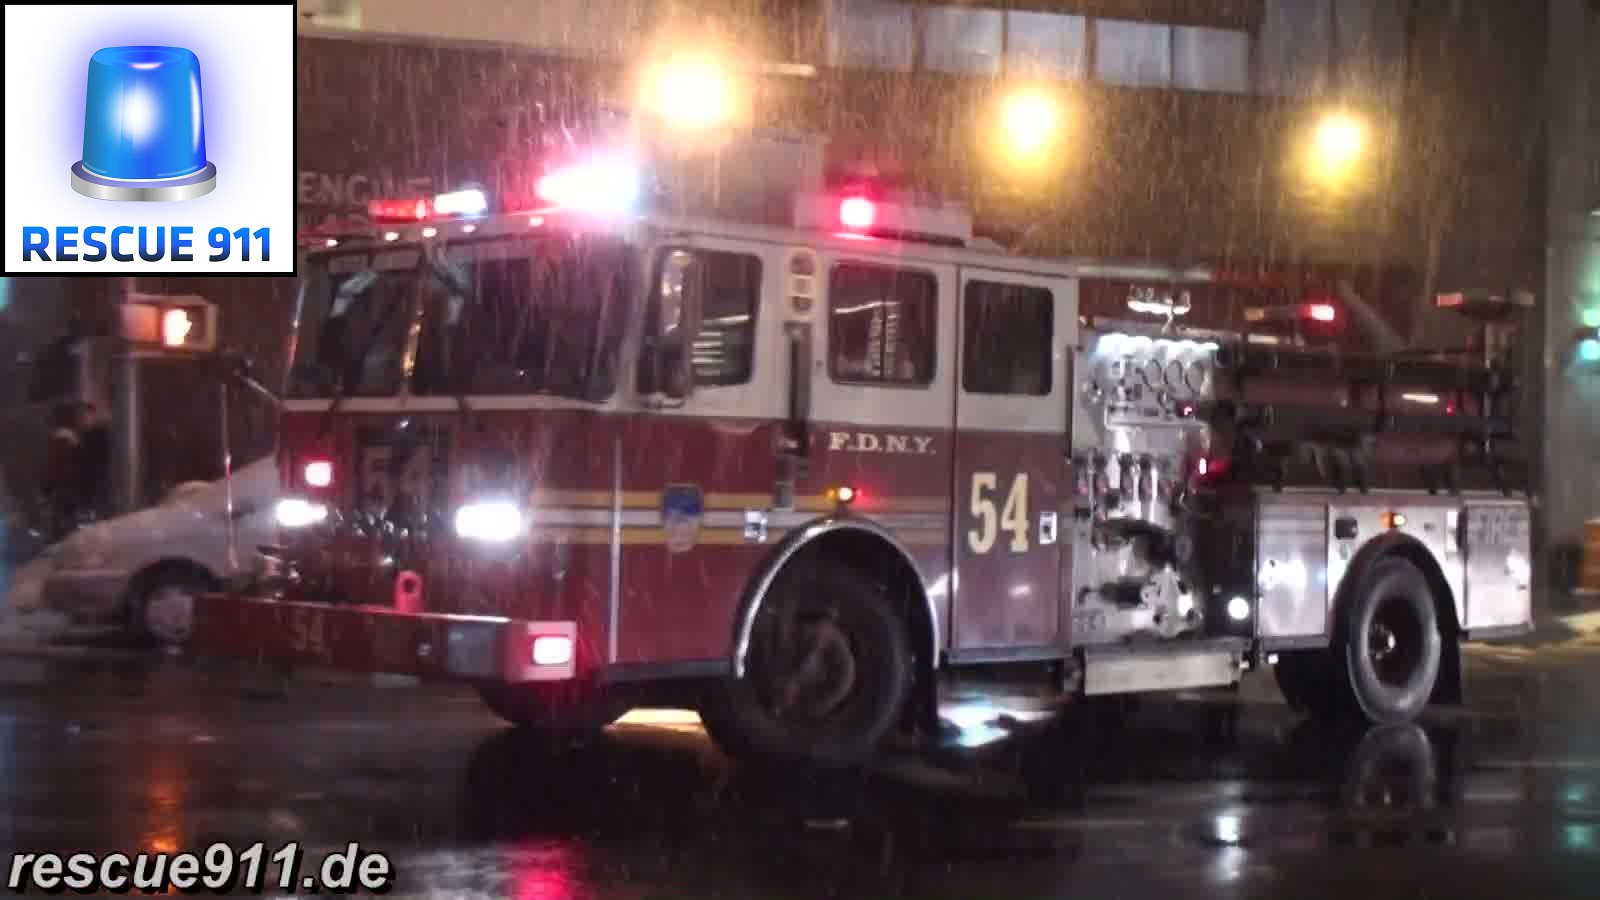 Engine 54 + Battalion 9 FDNY (stream)